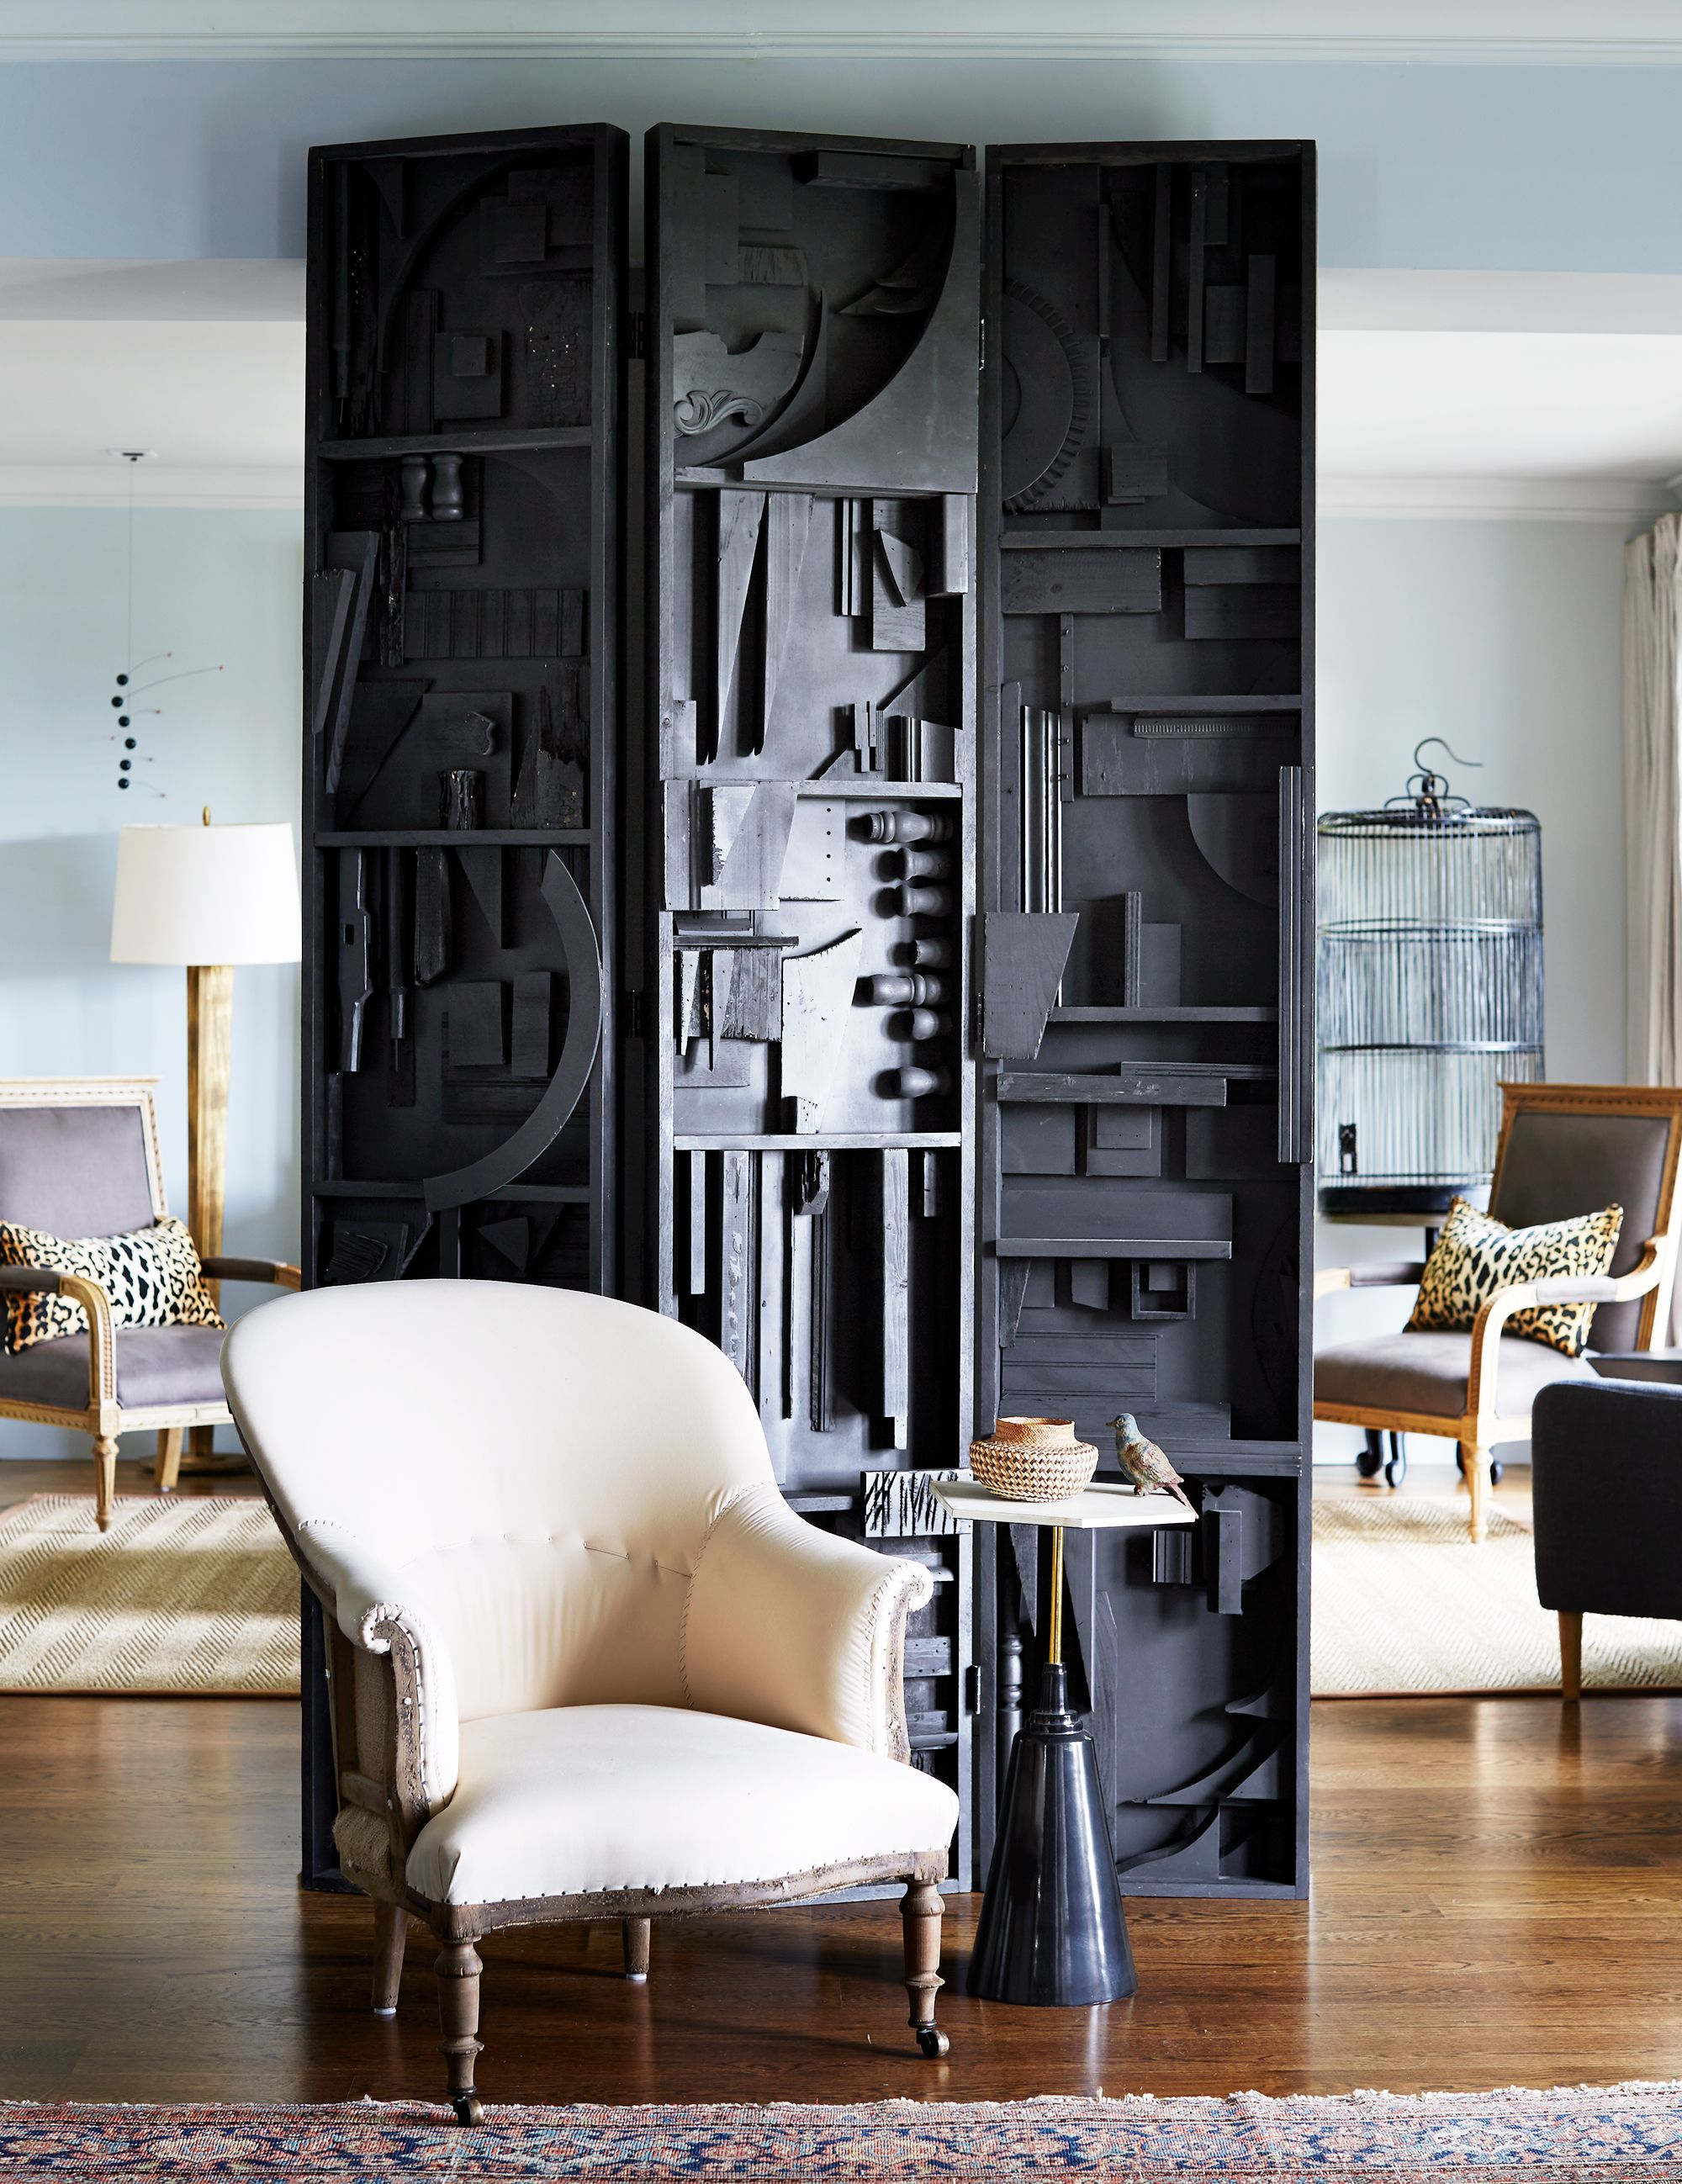 20 Clever Room Divider Ideas Folding Screen And Wall